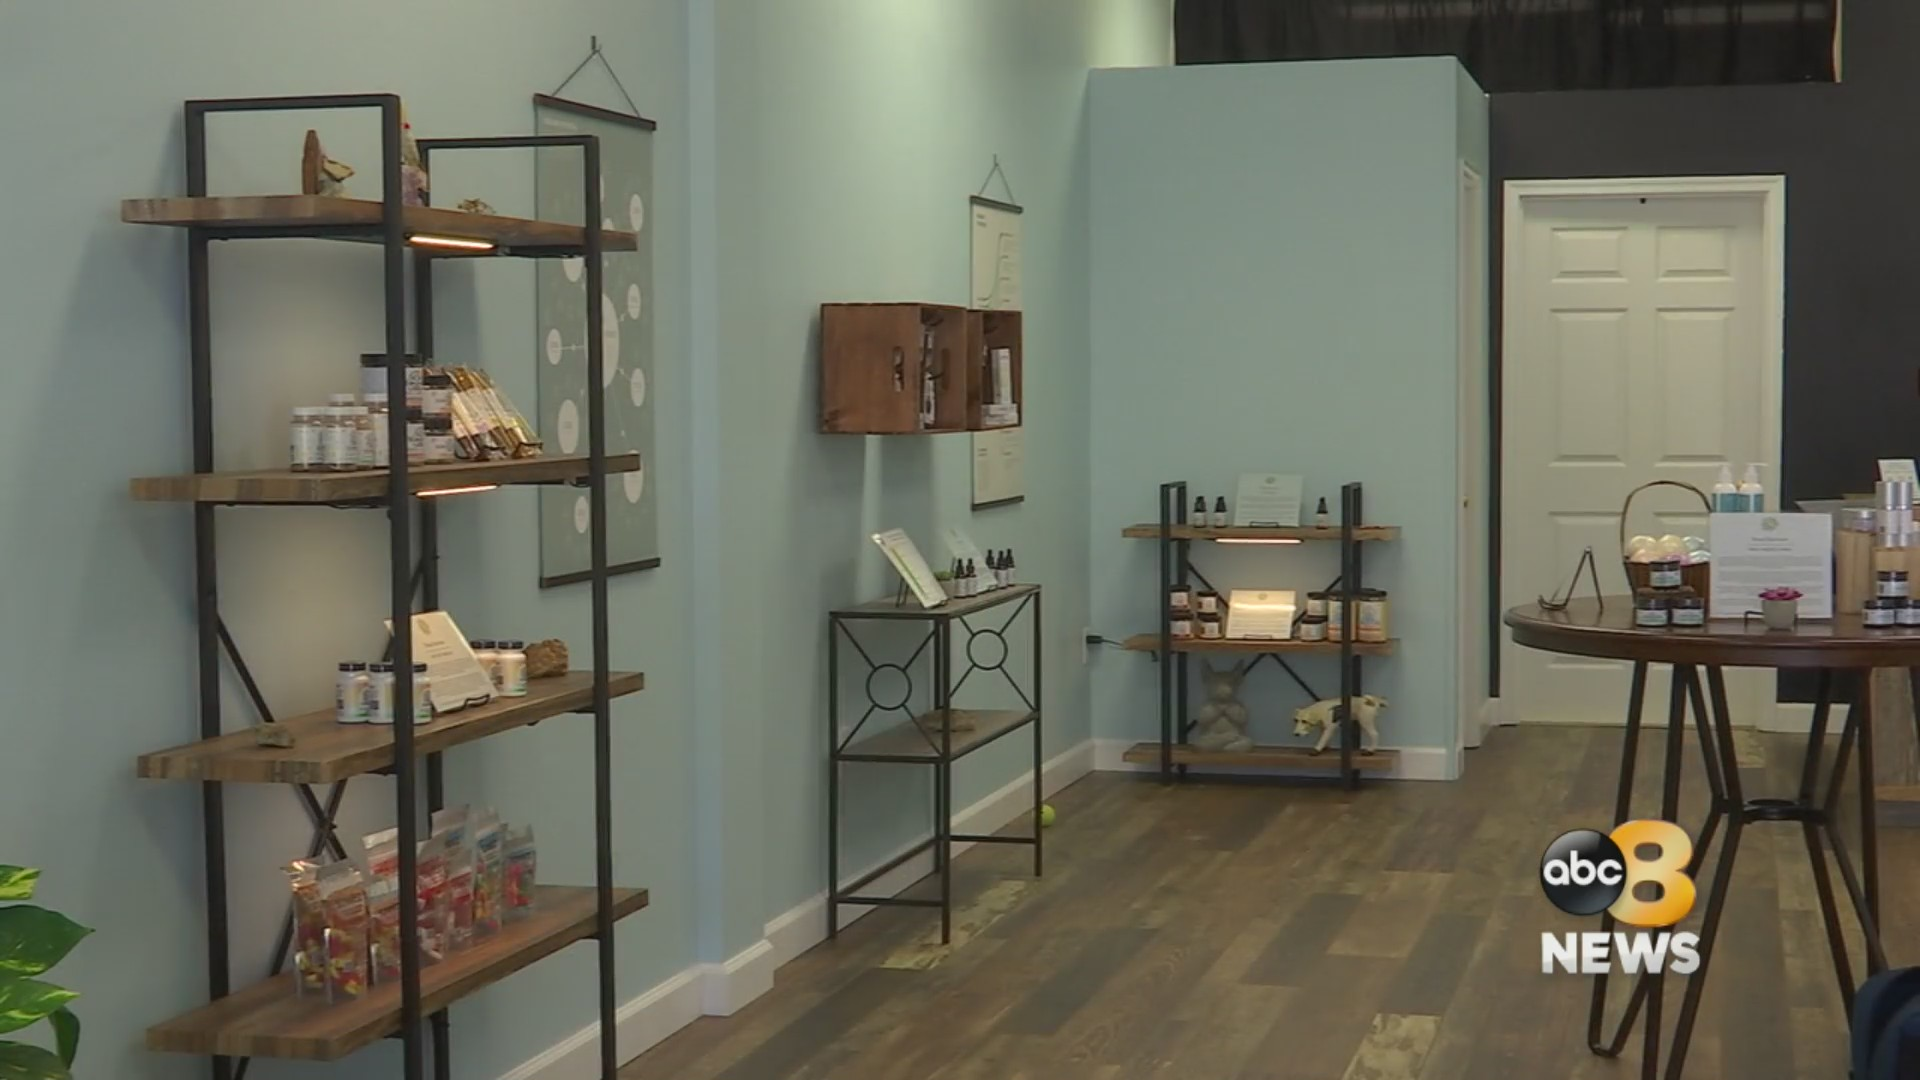 First of its kind': CBD shop opens in Hanover County | 8News